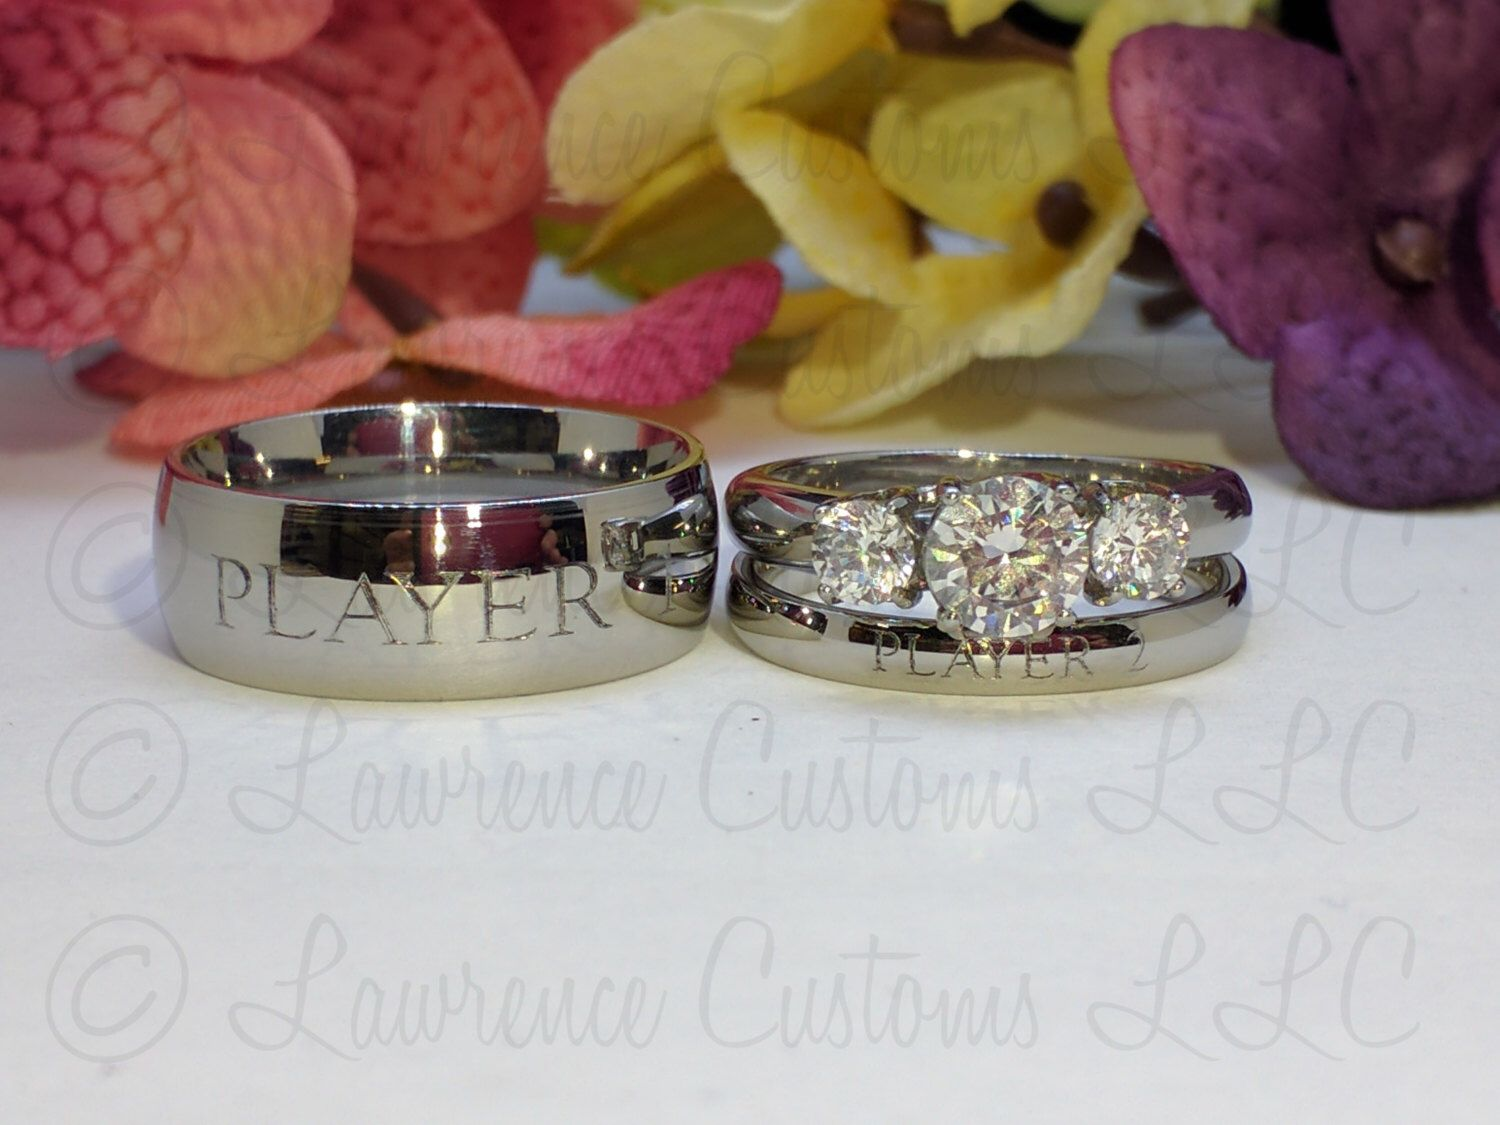 Player 1 Player 2 Couples Ring set High Shine 316L Stainless Steel